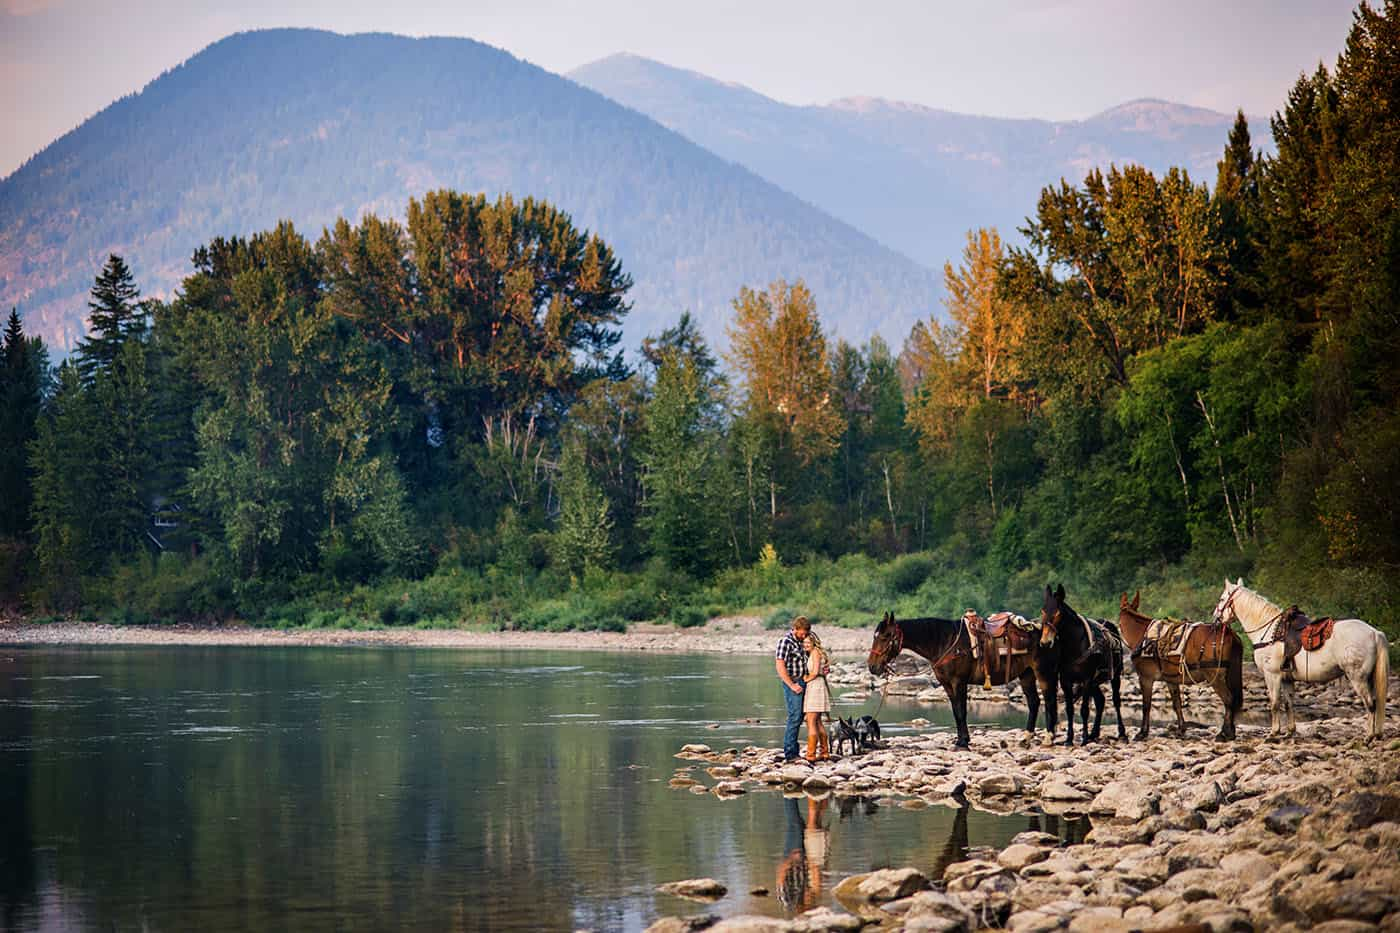 Epic Montana Photo Locations - beautiful couple with horses by a river at sunset